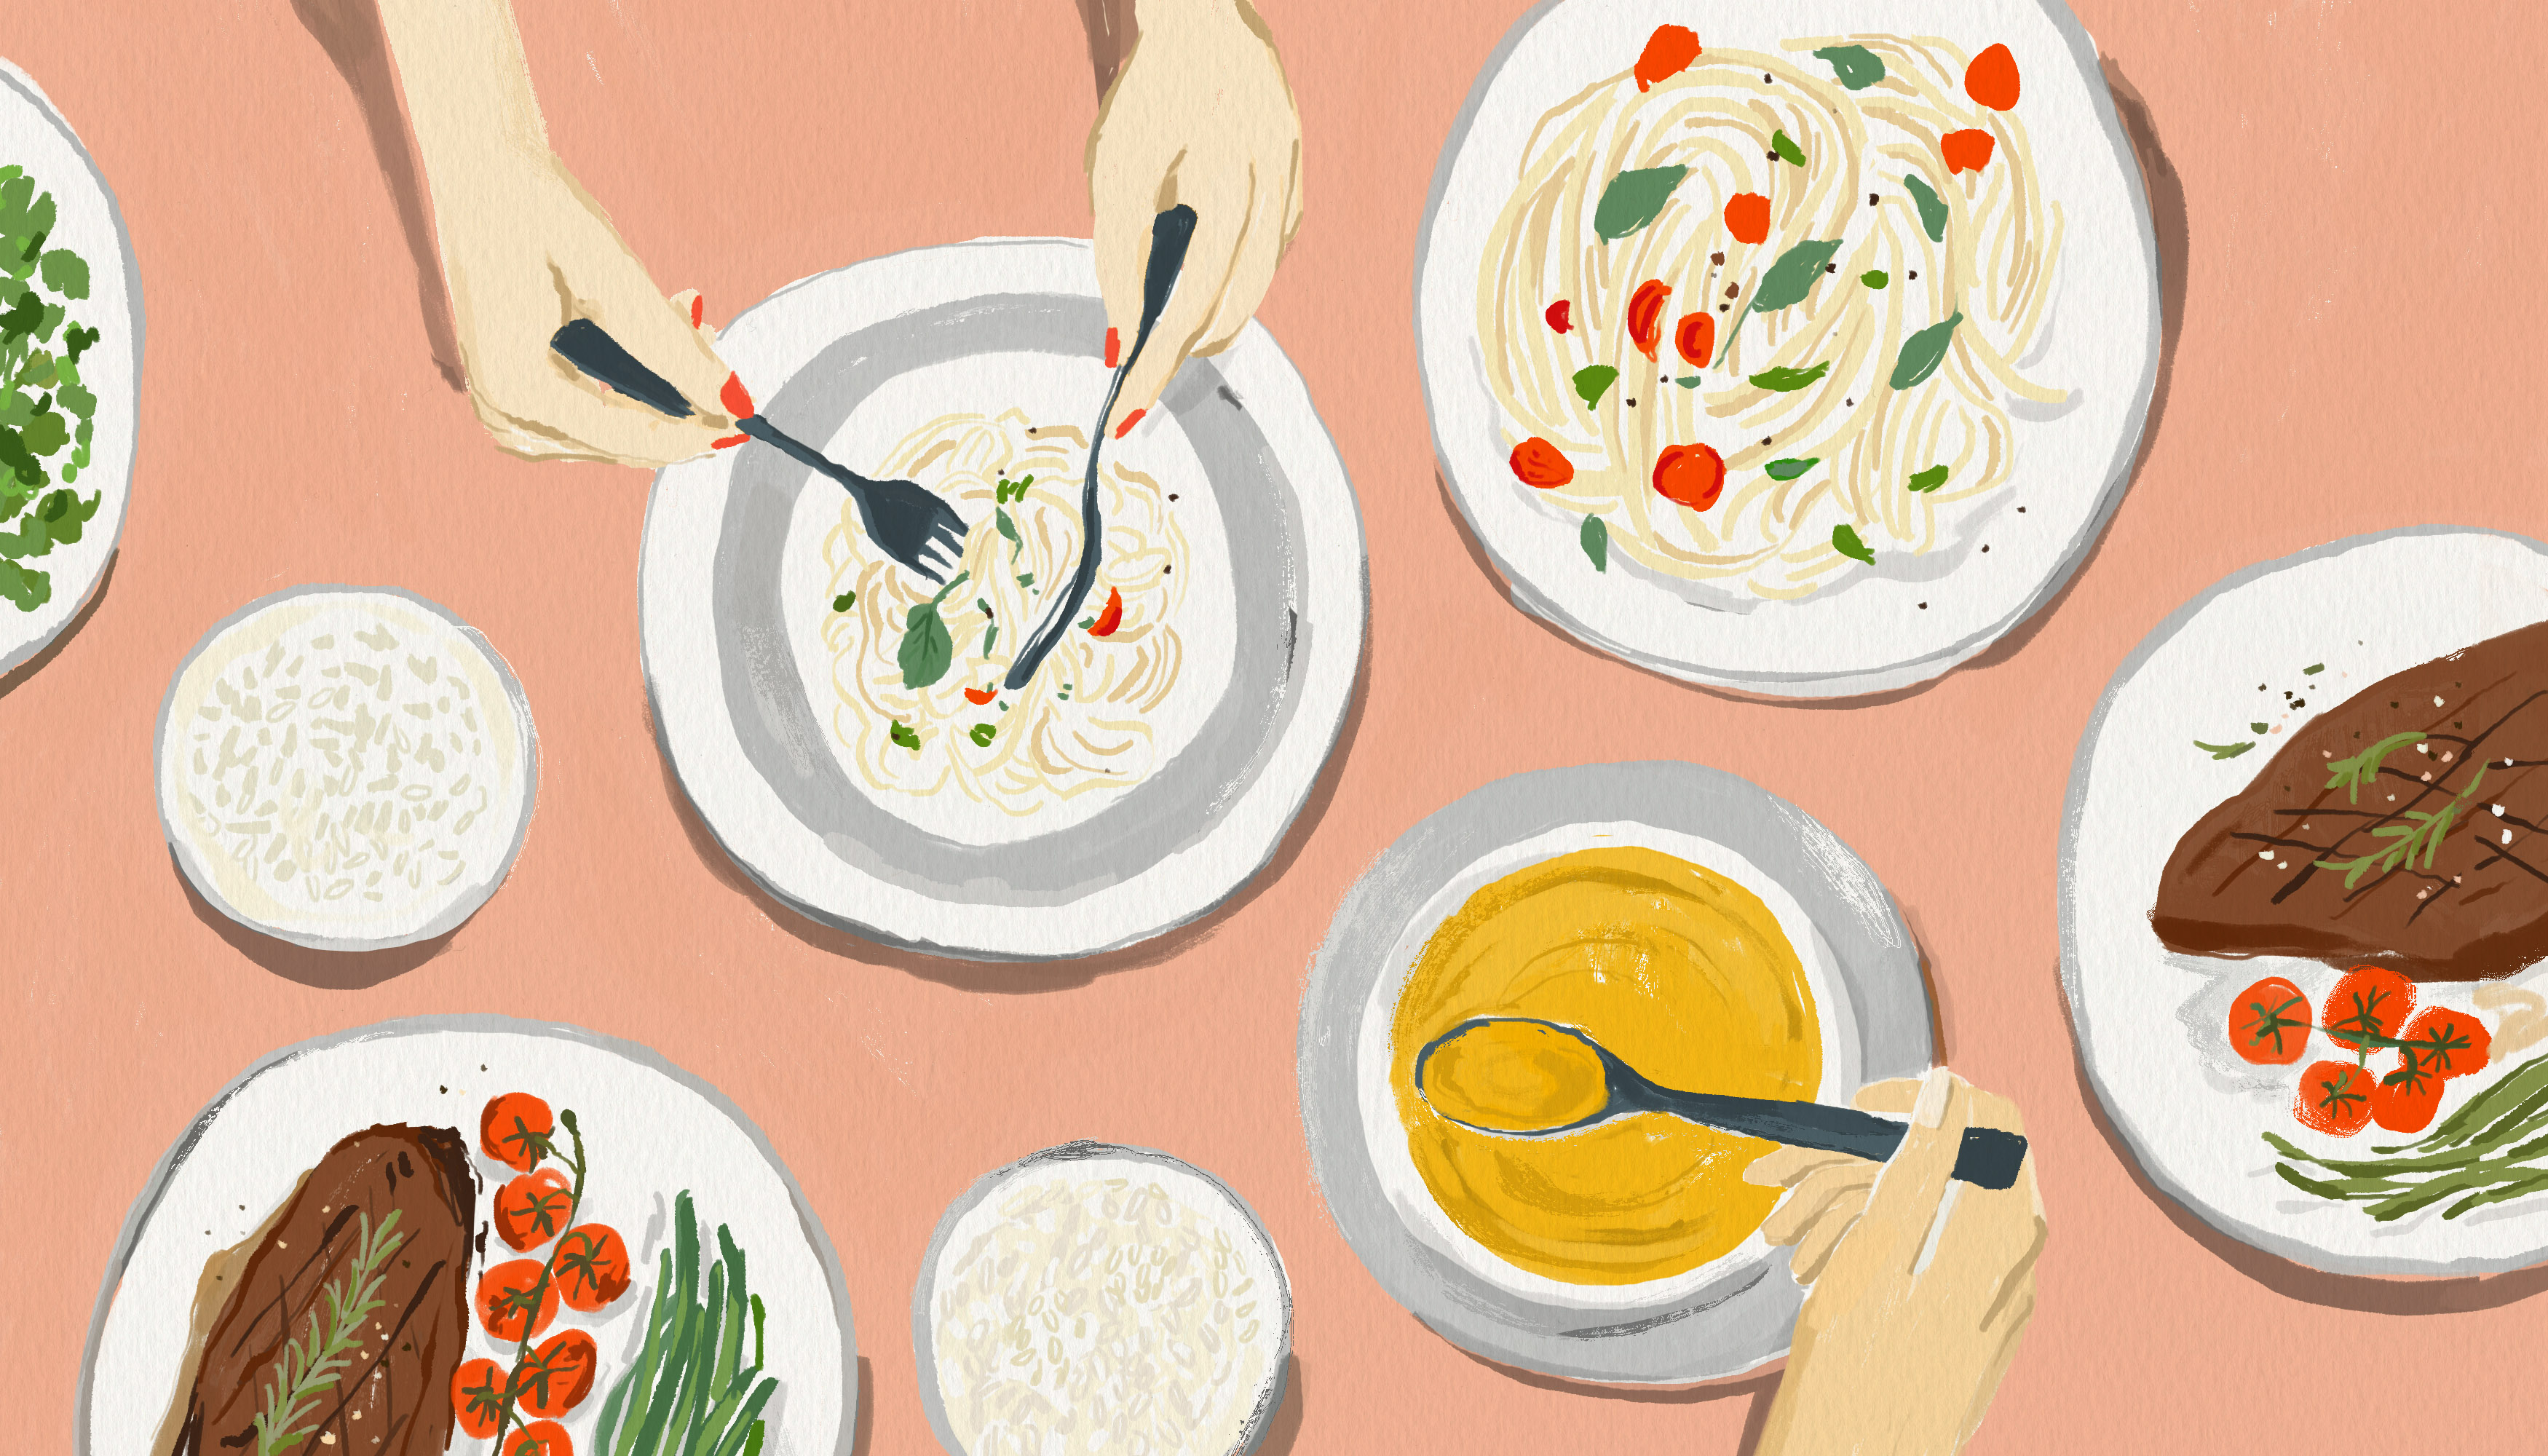 An overhead view of a dining table set with minimalist white plates and bowls with grey trim. A female's hand reaches in with a knife and fork to a dish filled with pasta. Another hand spoons soup. Illustration.